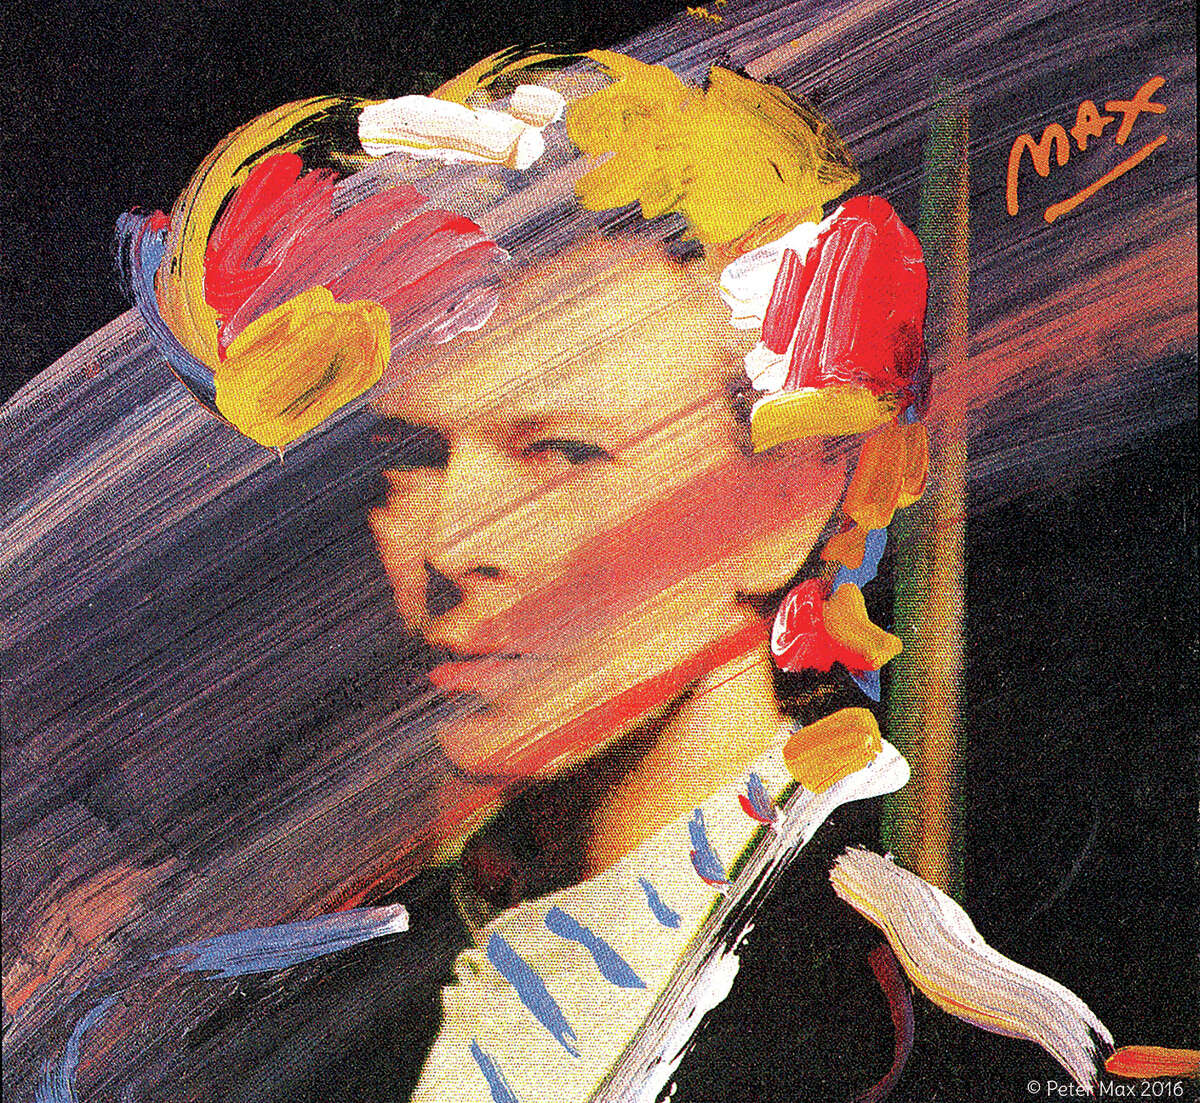 Peter Max's iconic image of David Bowie.